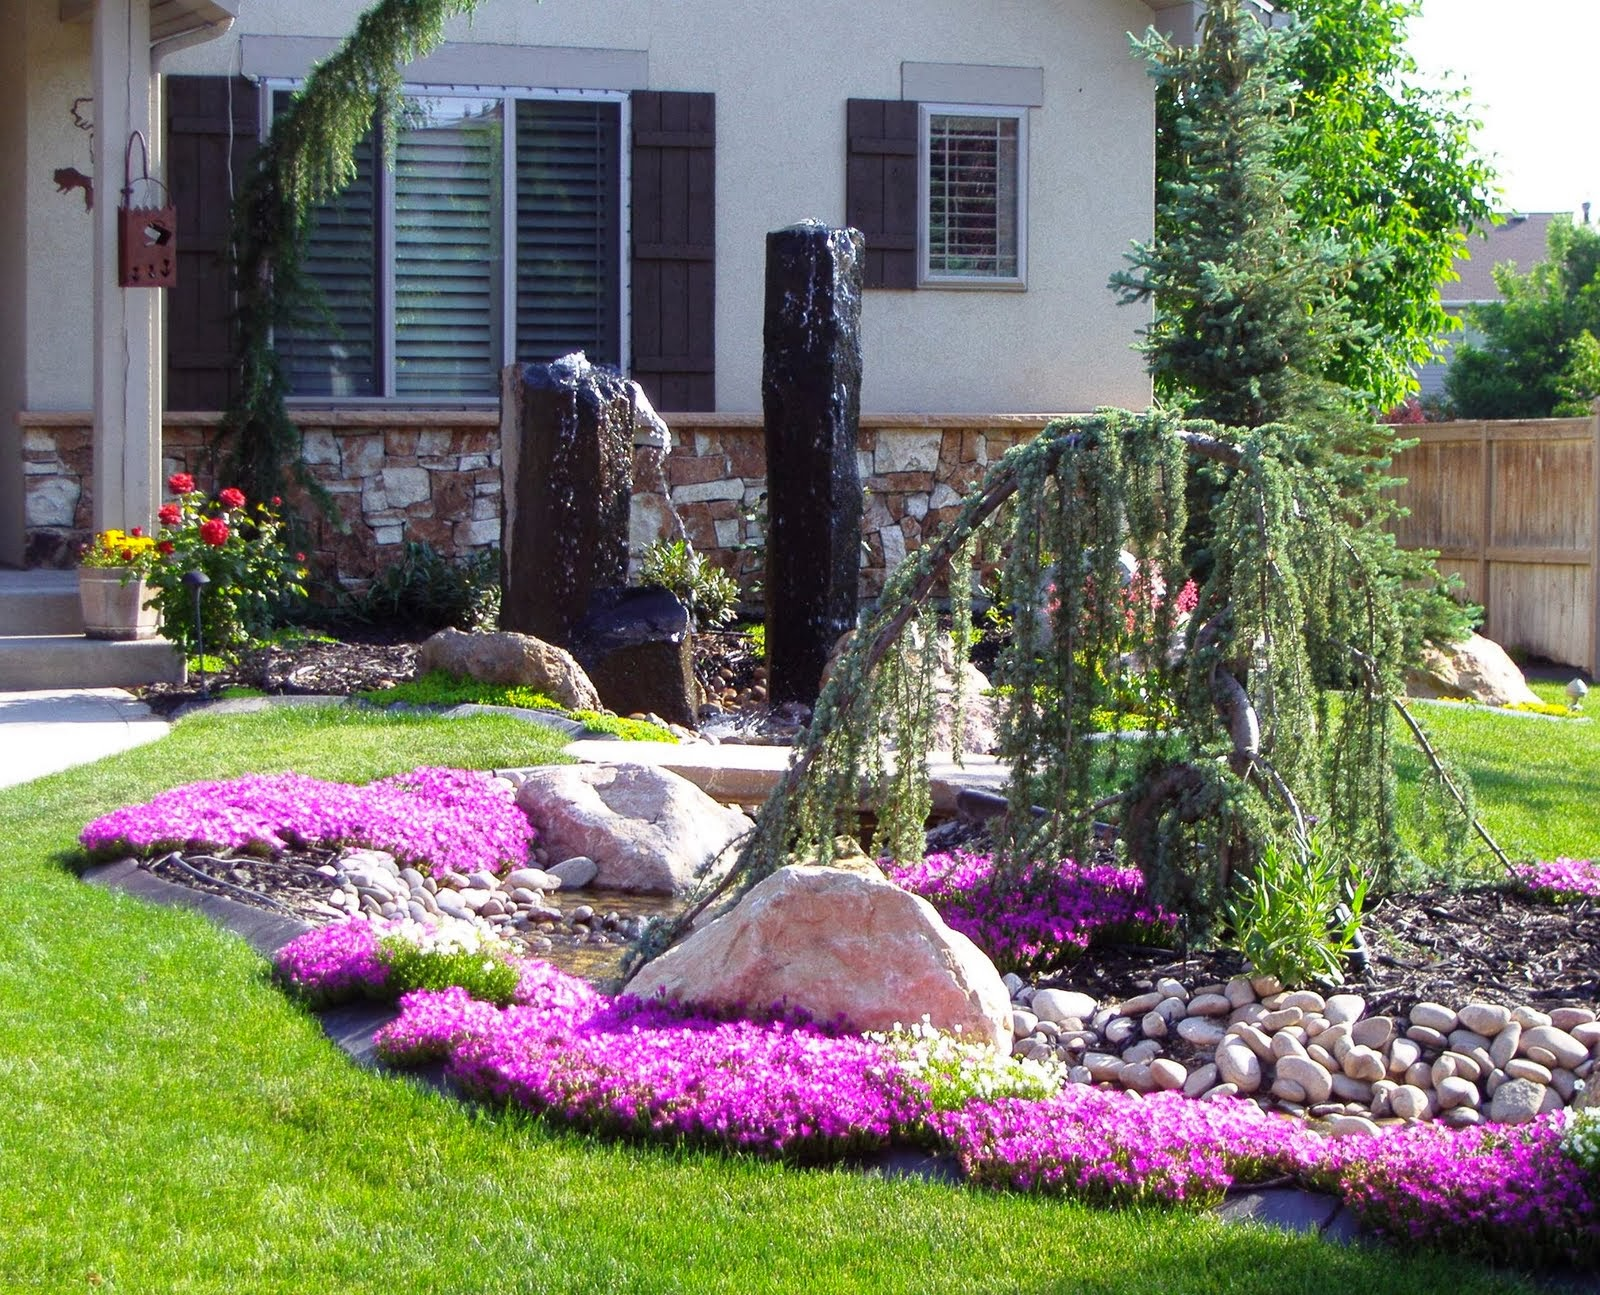 Gardening and Landscaping: Front Yard Landscaping Ideas on Landscape Design Ideas  id=40269